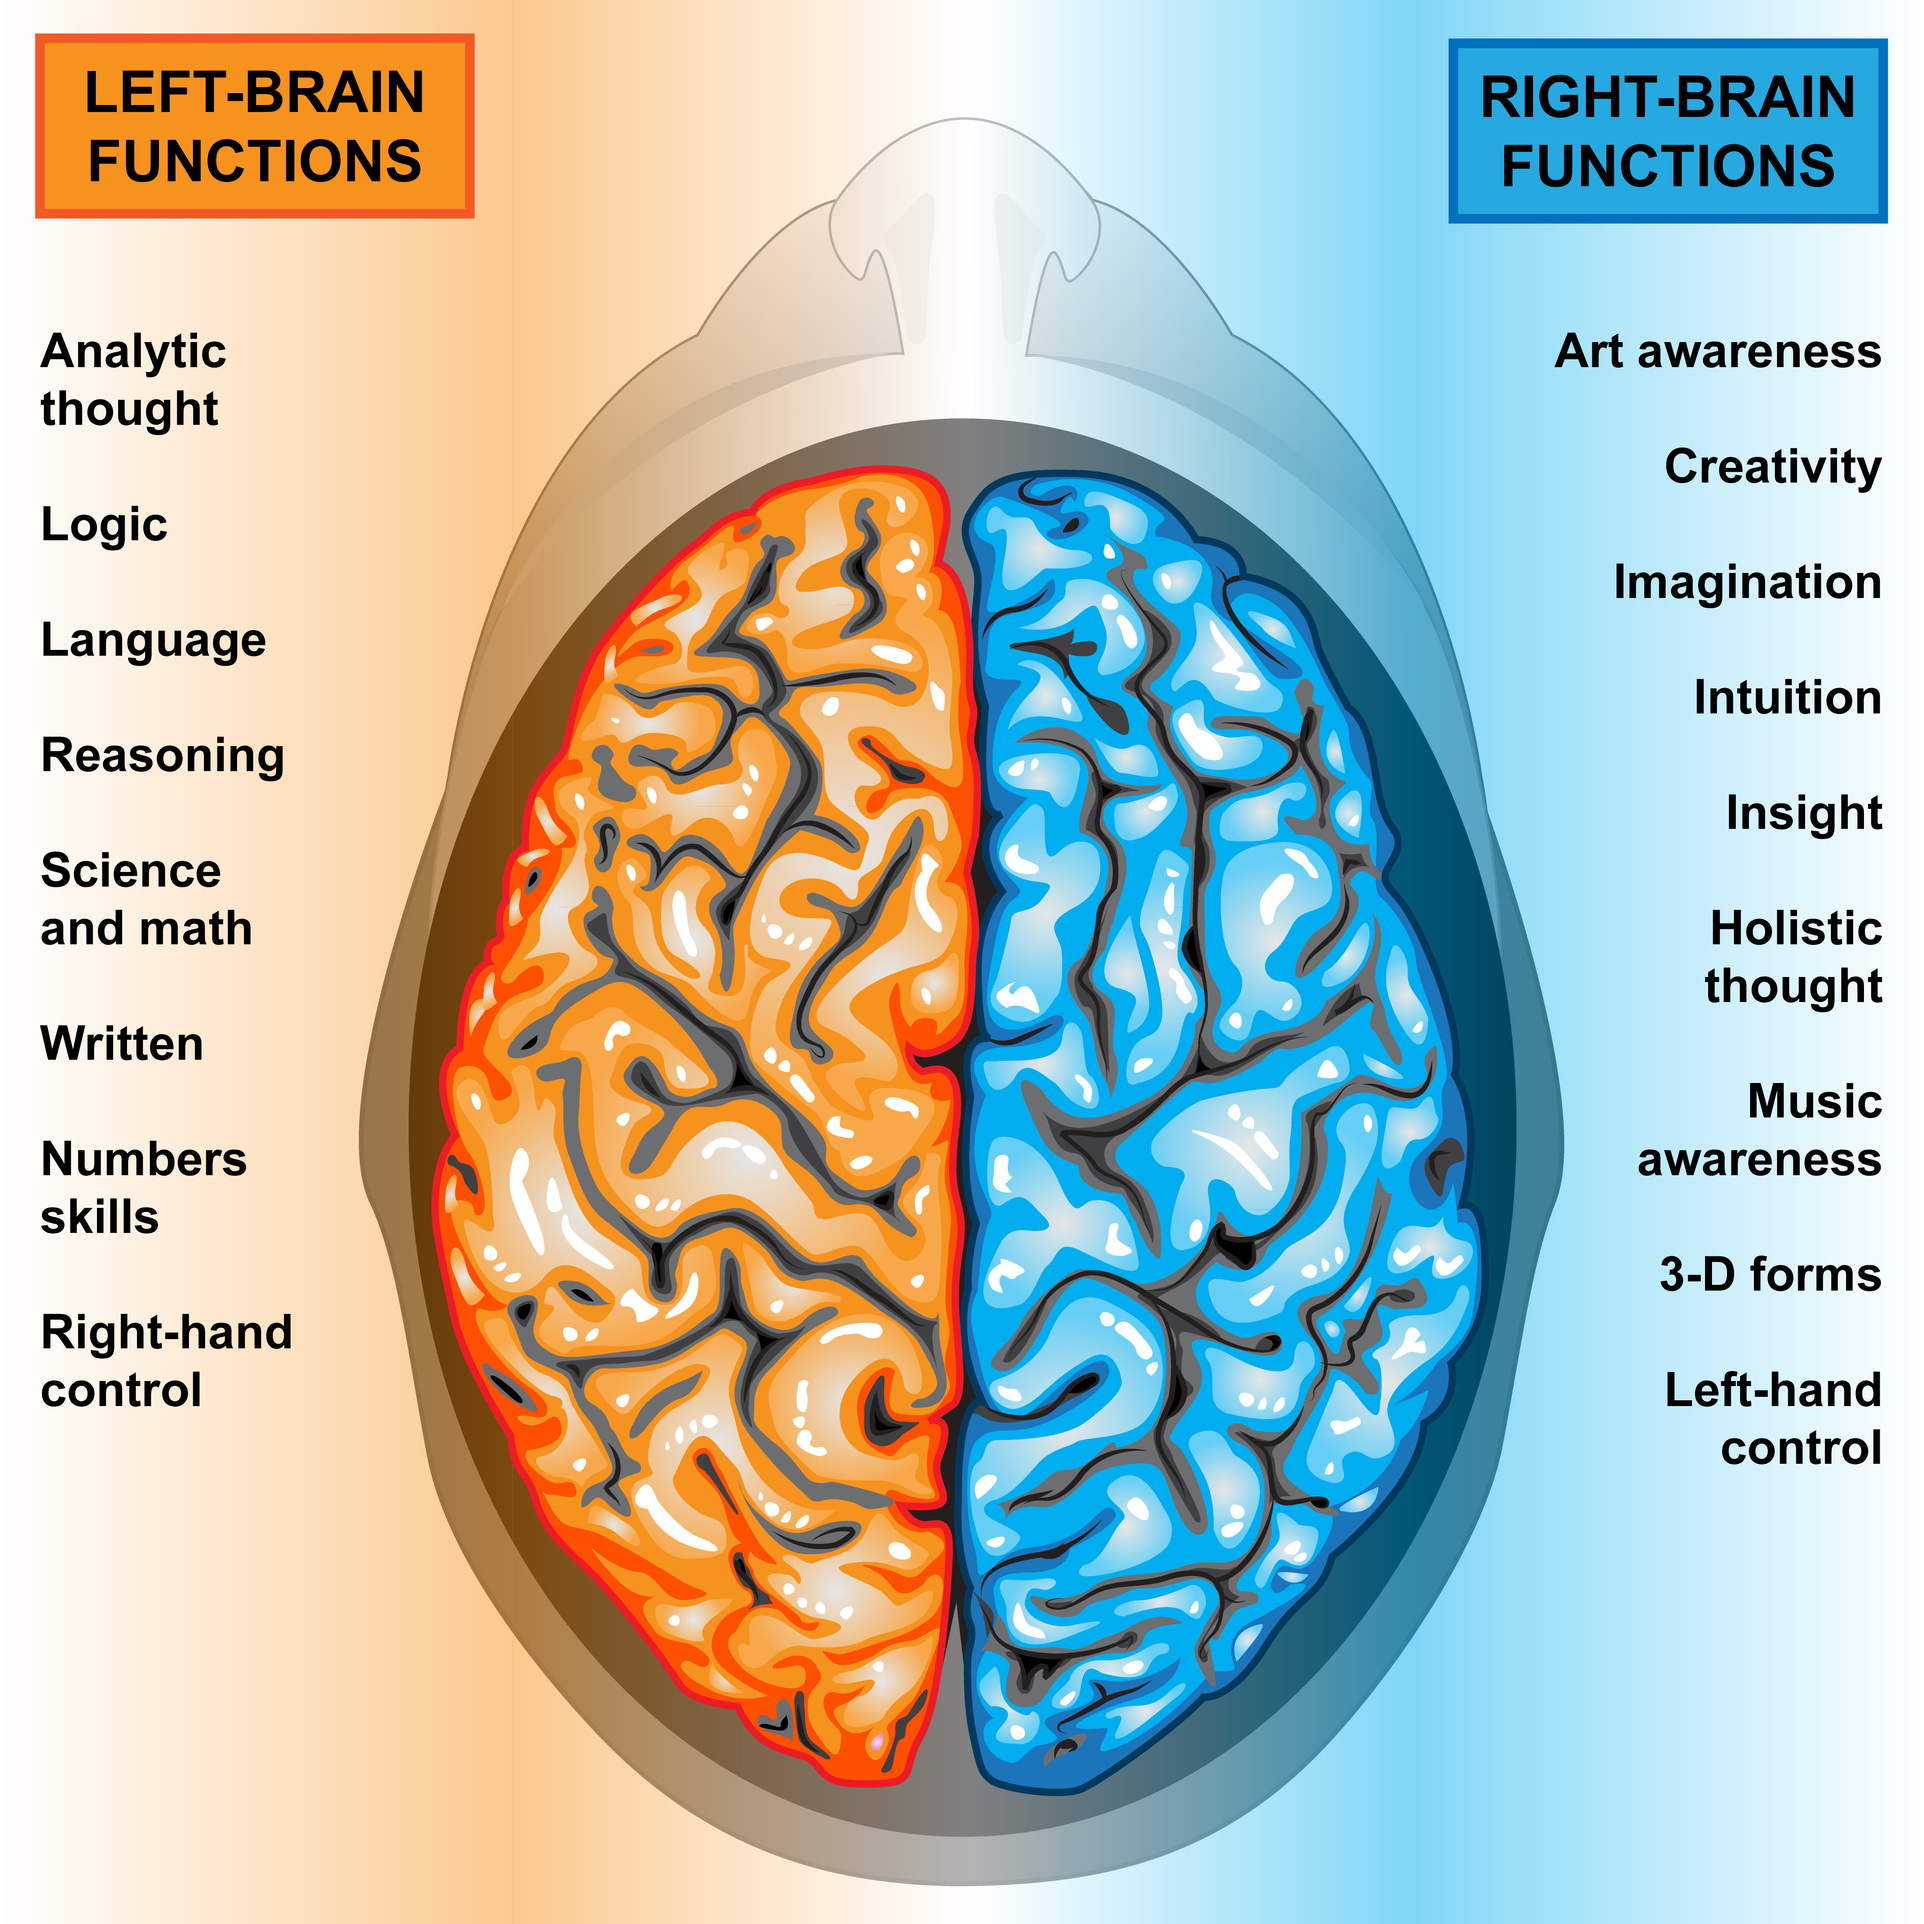 Human Brain Left And Right Functions Space Coach